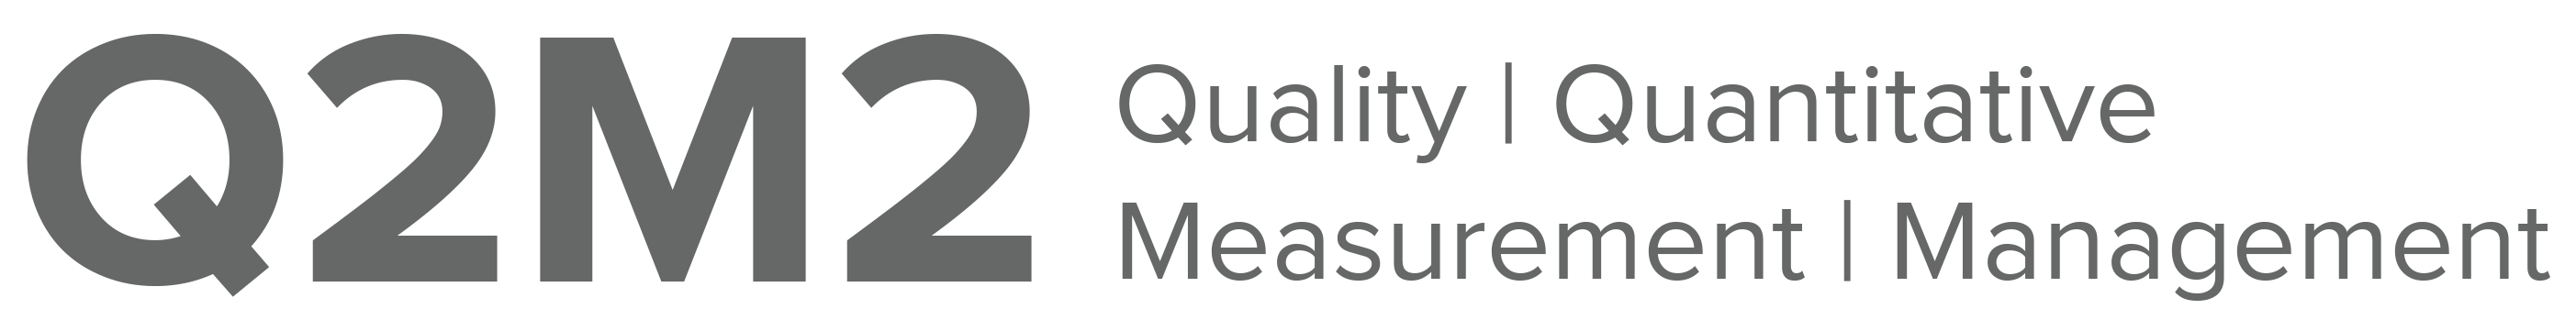 Q2M2 Data-driven Improvement of Your Organisation's Performance